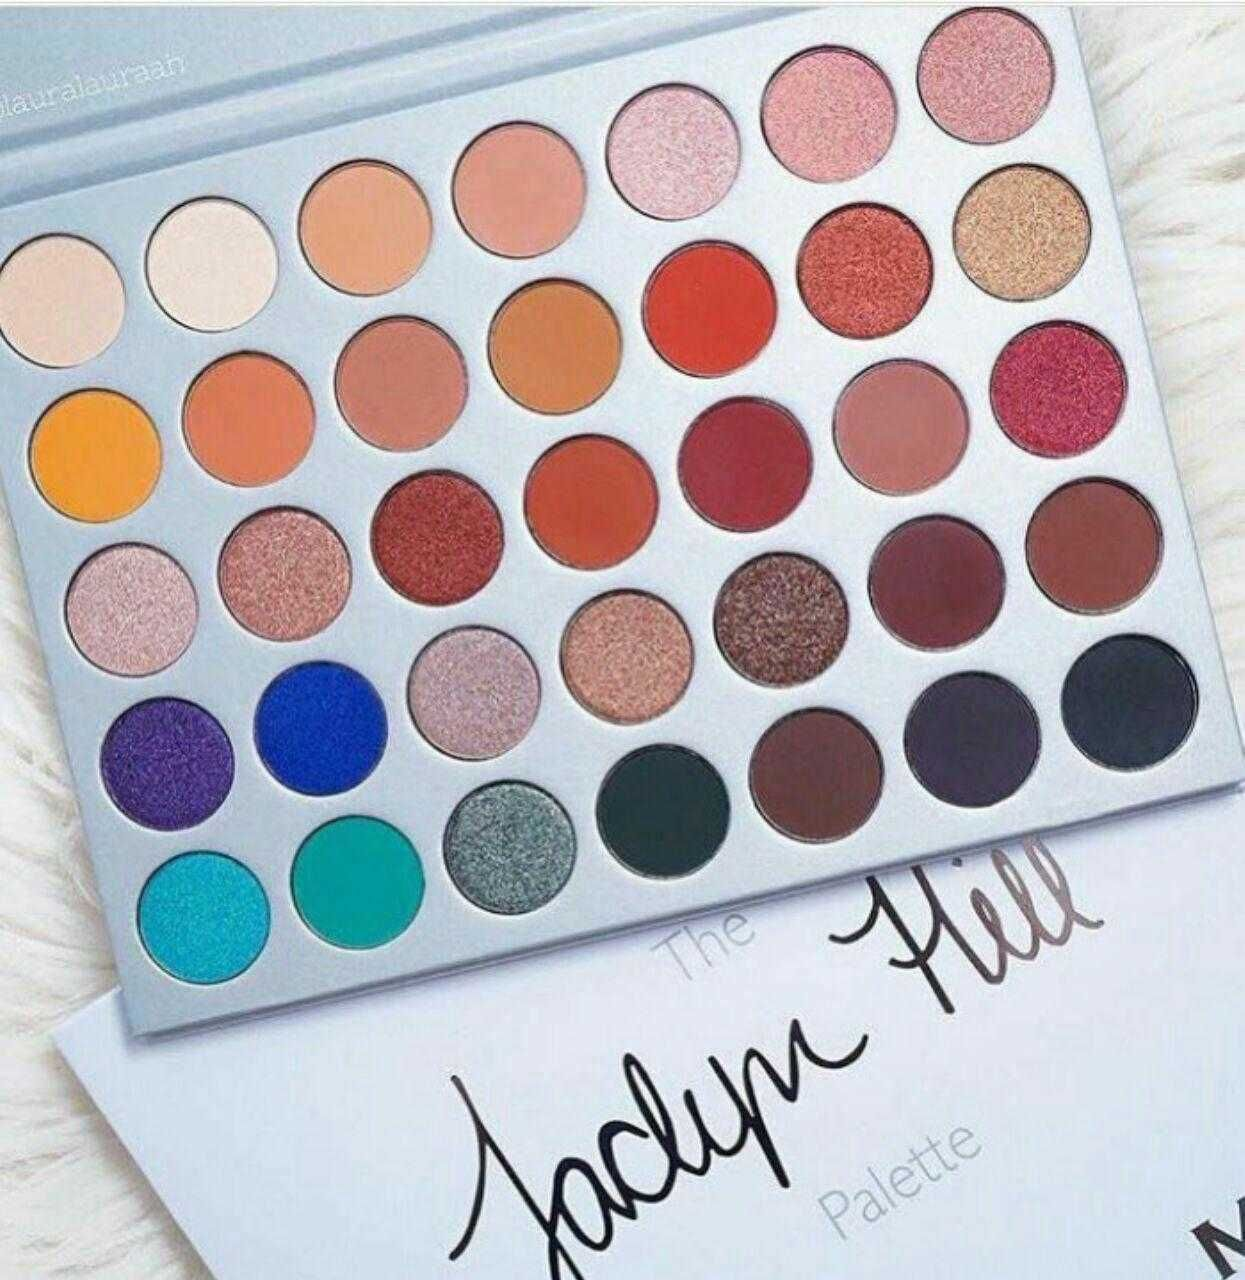 اي شادو جاكلين هيل مورفي باليت الاصلي Jaclyn Hill Morphe Palette Eyeshadow Makeup Pallets Jaclyn Hill Eyeshadow Palette